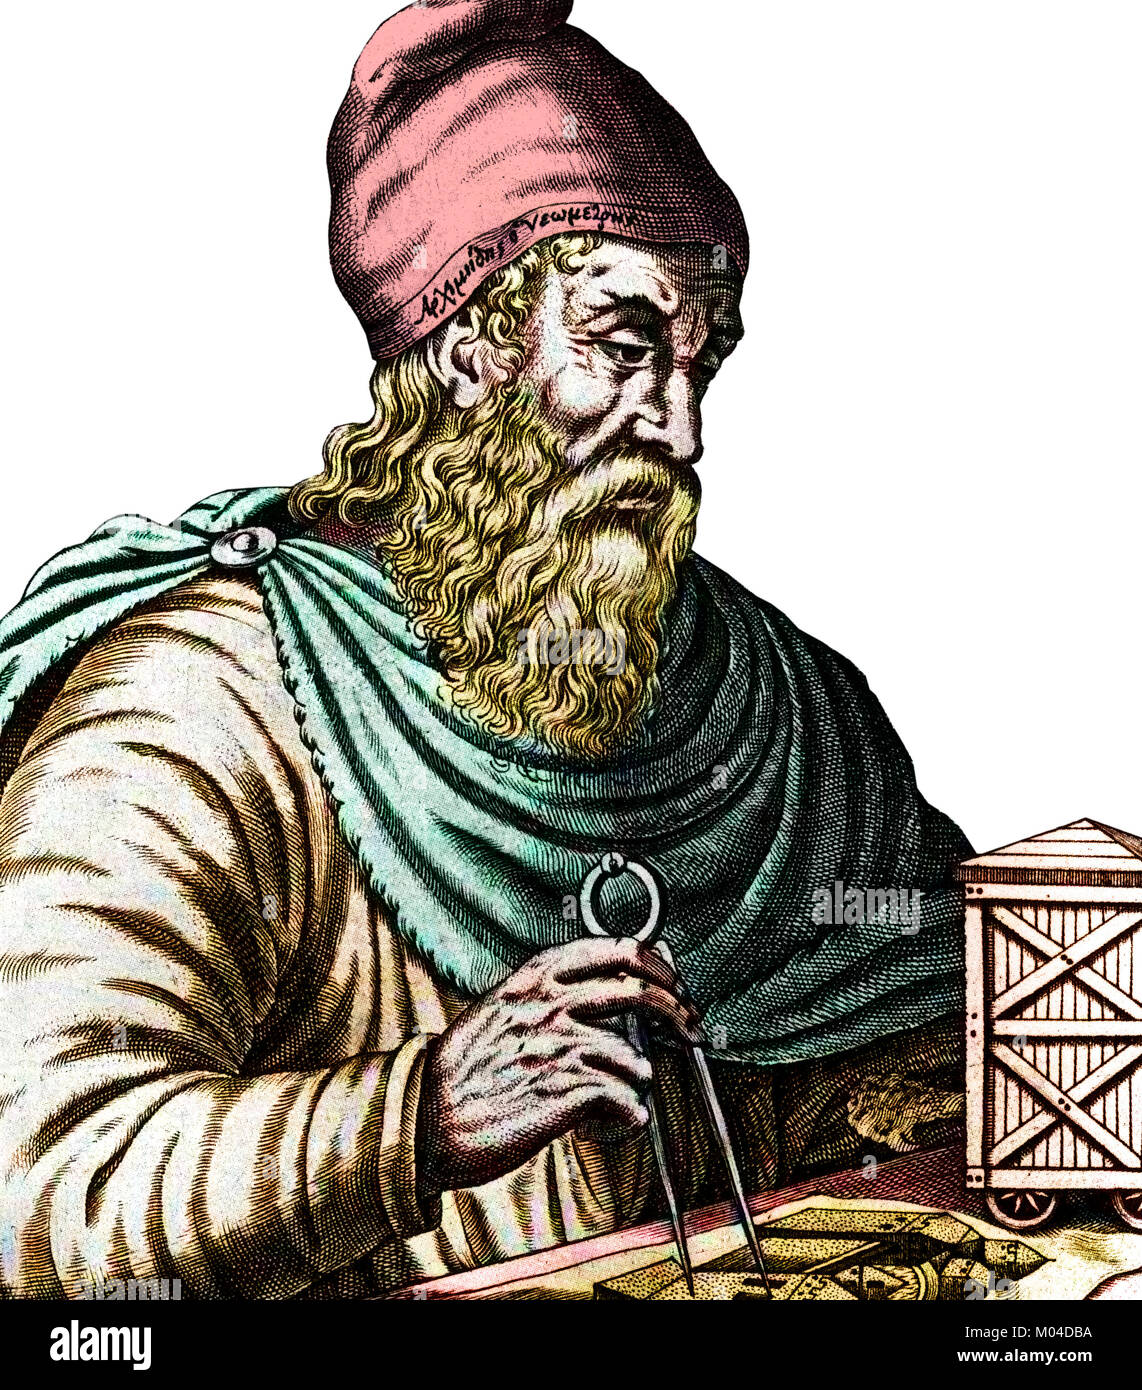 Archimedes stock photos archimedes stock images alamy for A archimede